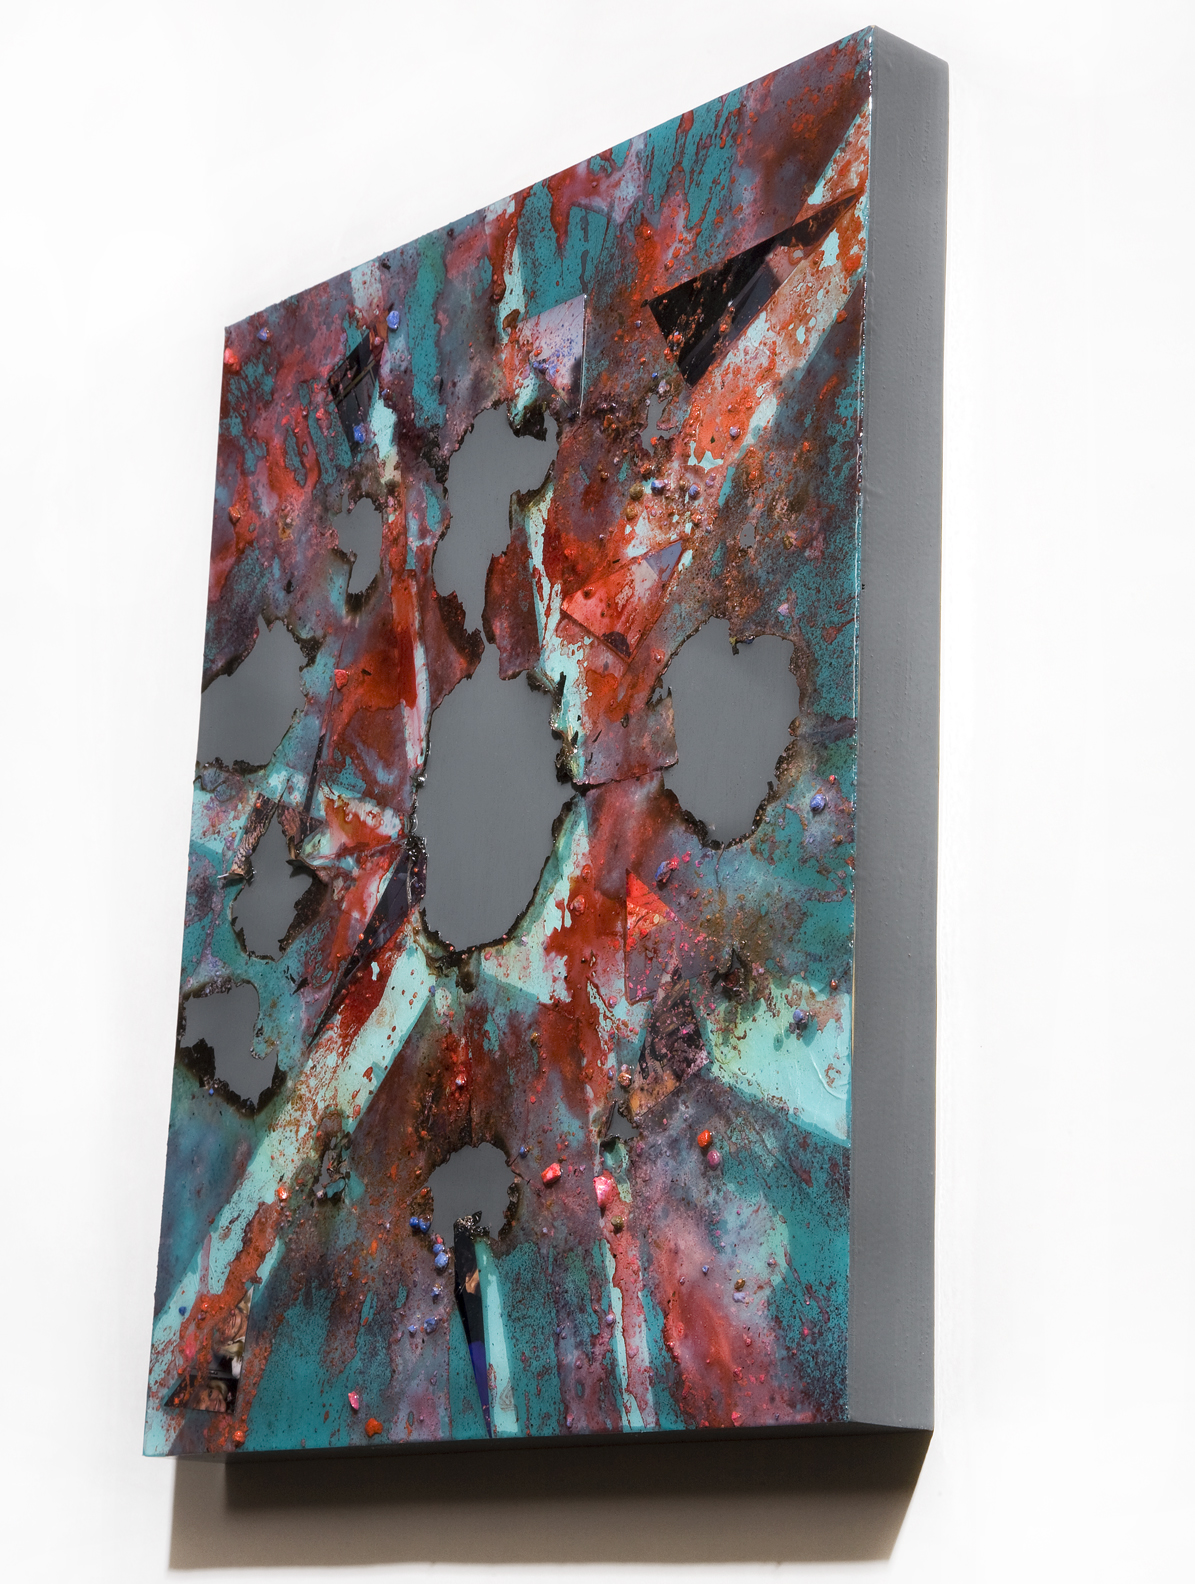 """SERIE I, Untitled SIDE VIEW (teal/grey), photographs, photo background paper, chalk, spray paint, packing tape, powder drink, glue, epoxy resin on wood panel, 16""""x20""""x2"""", 2019"""